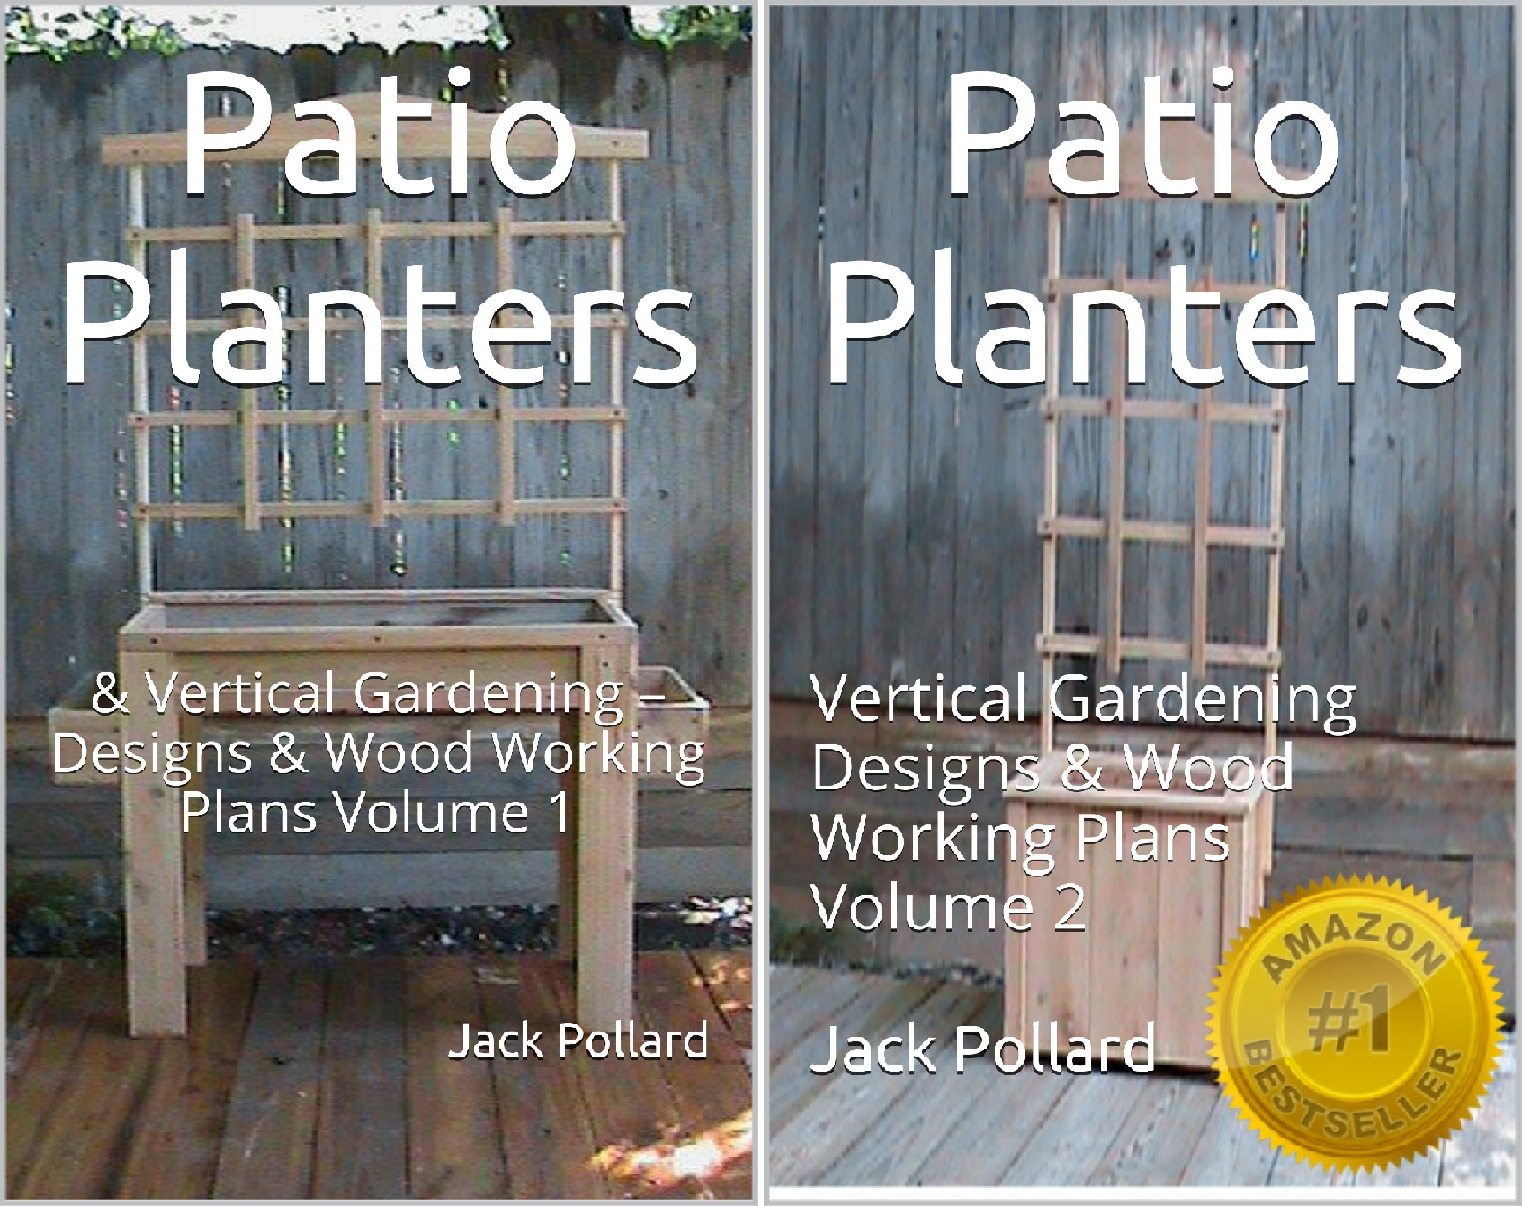 Patio Planters: & Vertical Gardening - Designs & Wood Working Plans (2 Book Series)